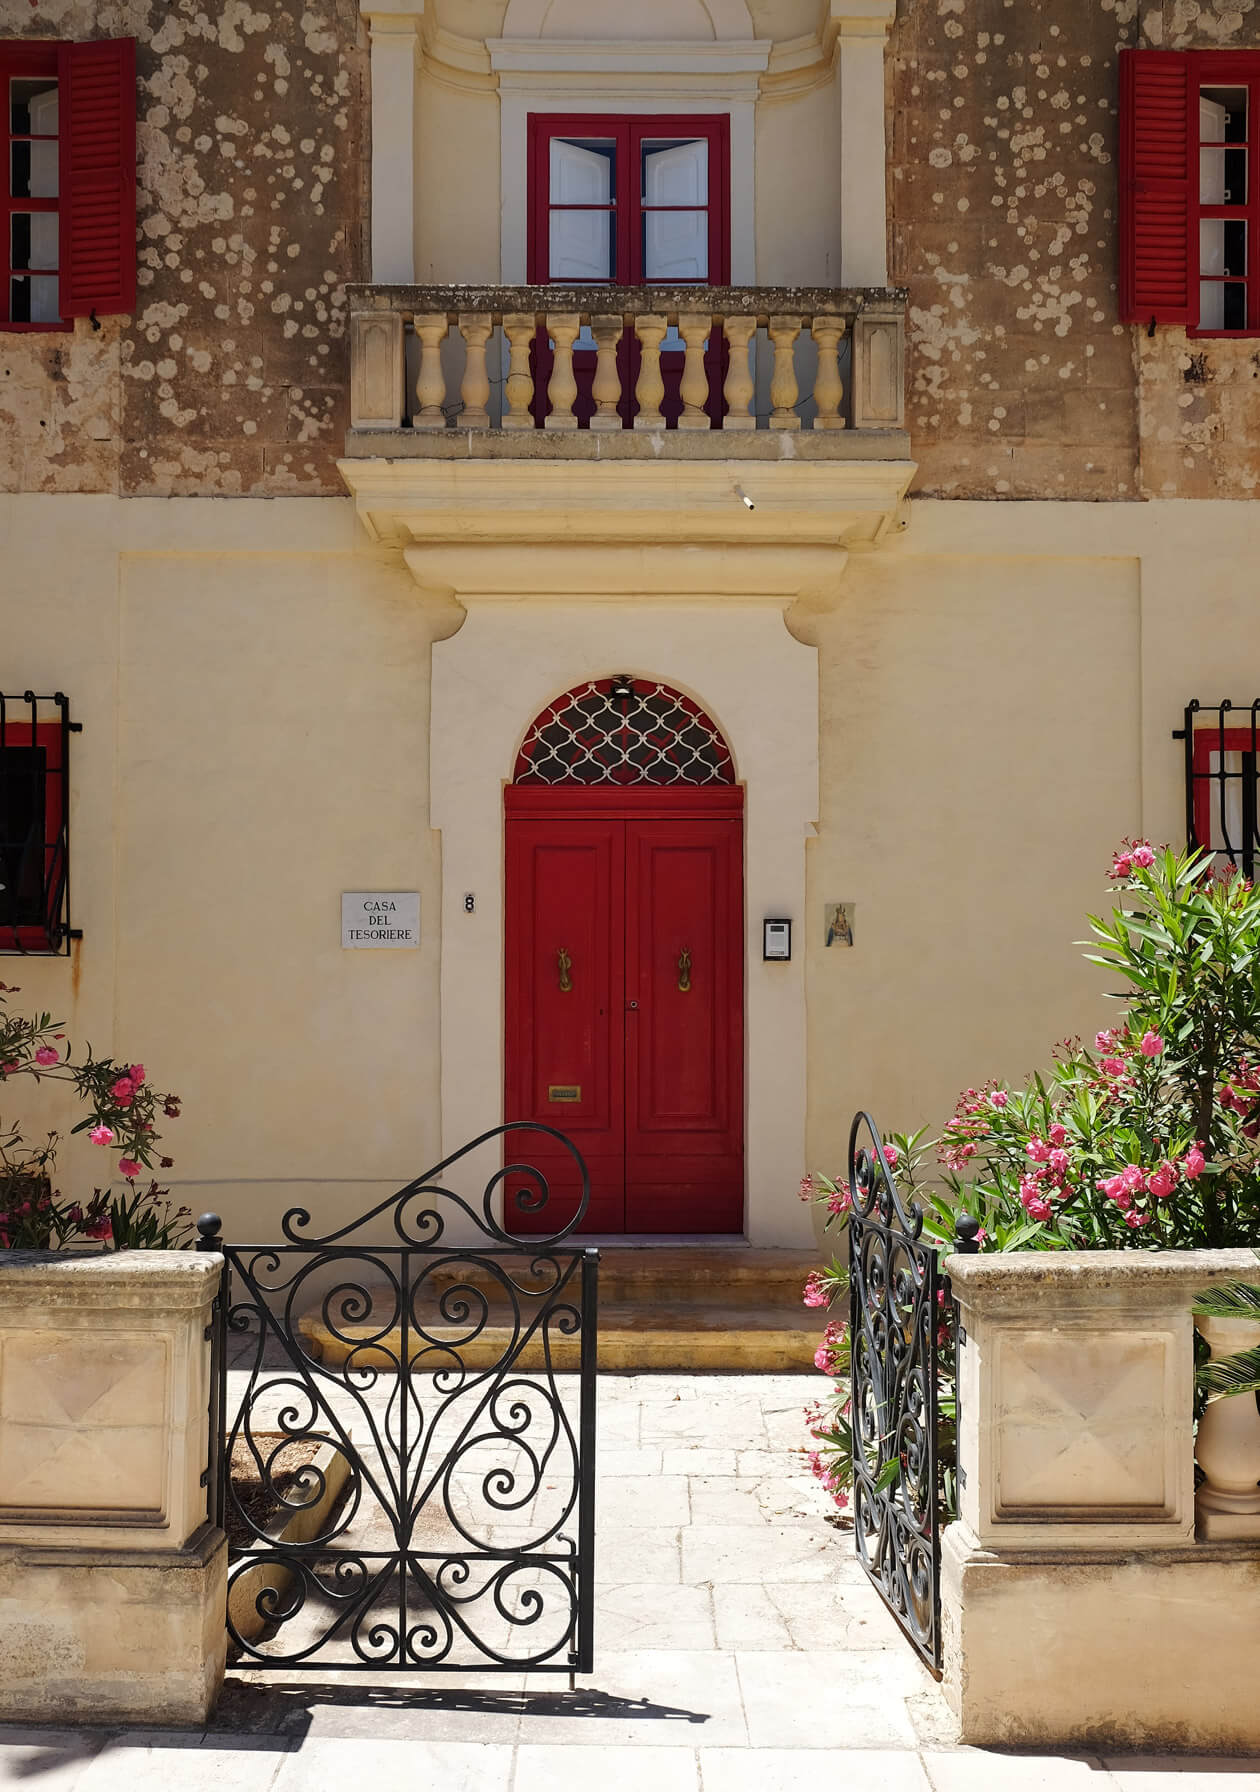 One of the very photogenic doors in Mdina